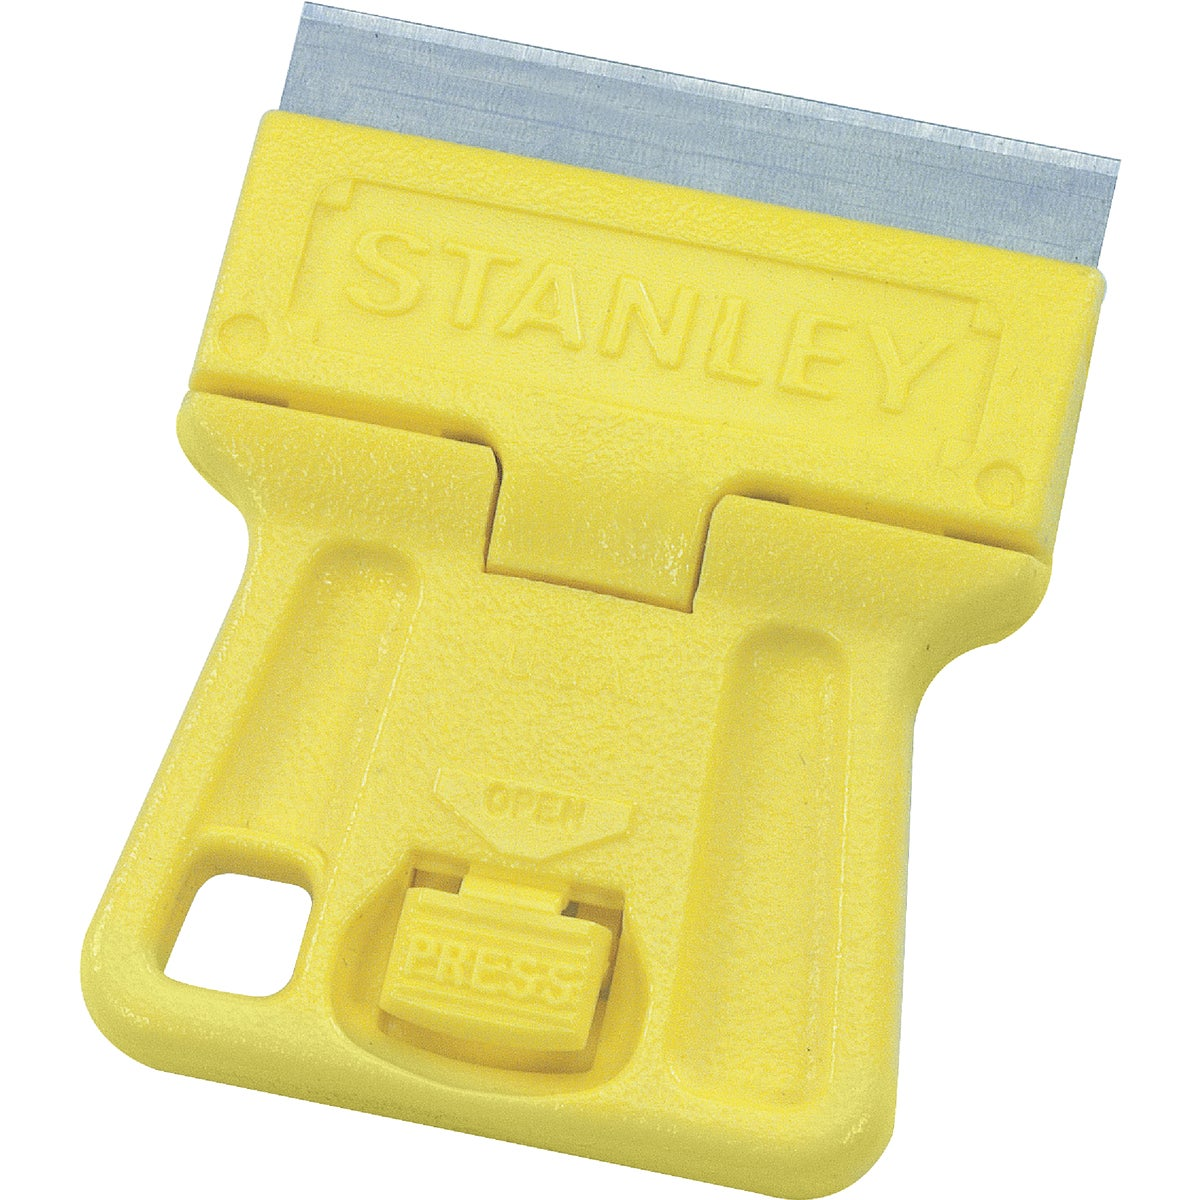 MINI HAND SCRAPER - 28-100 by Stanley Tools